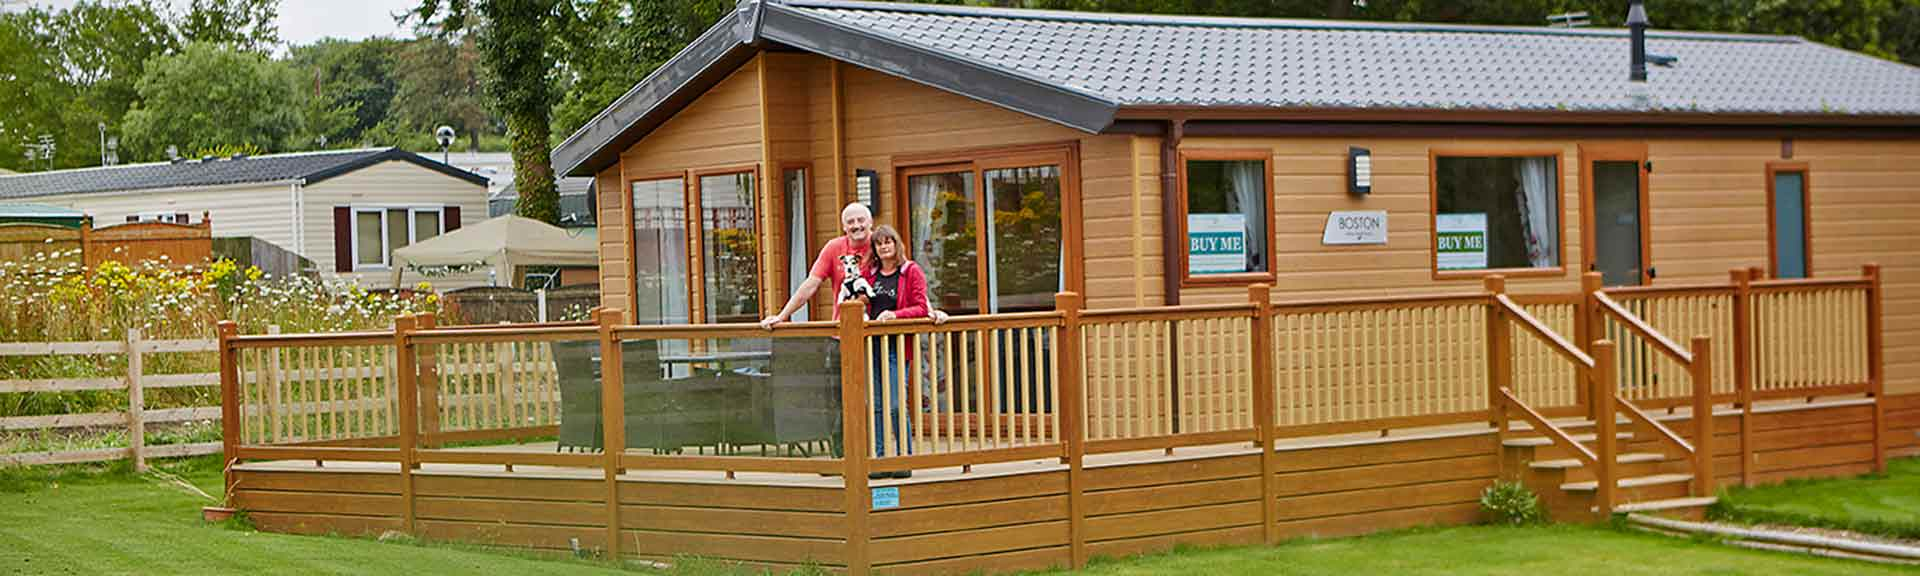 Static Caravans for Sale in North Wales for Everyone